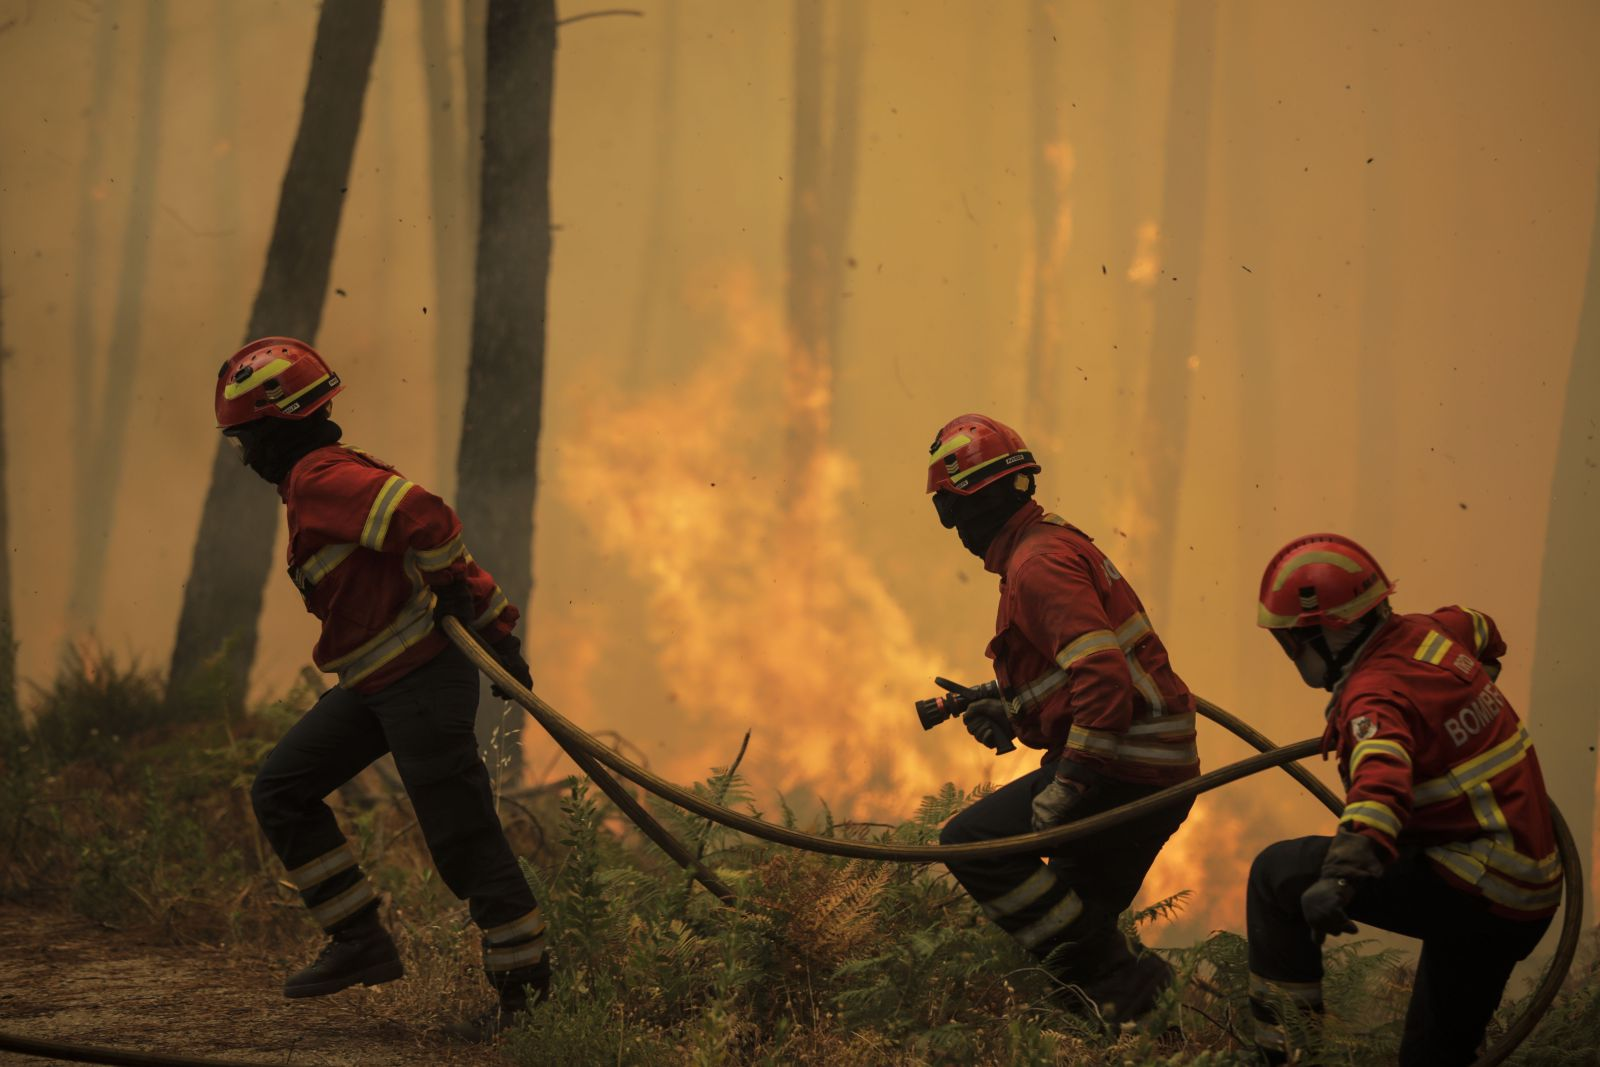 Forest fire in Oleiros, Portugal - 26 Jul 2020